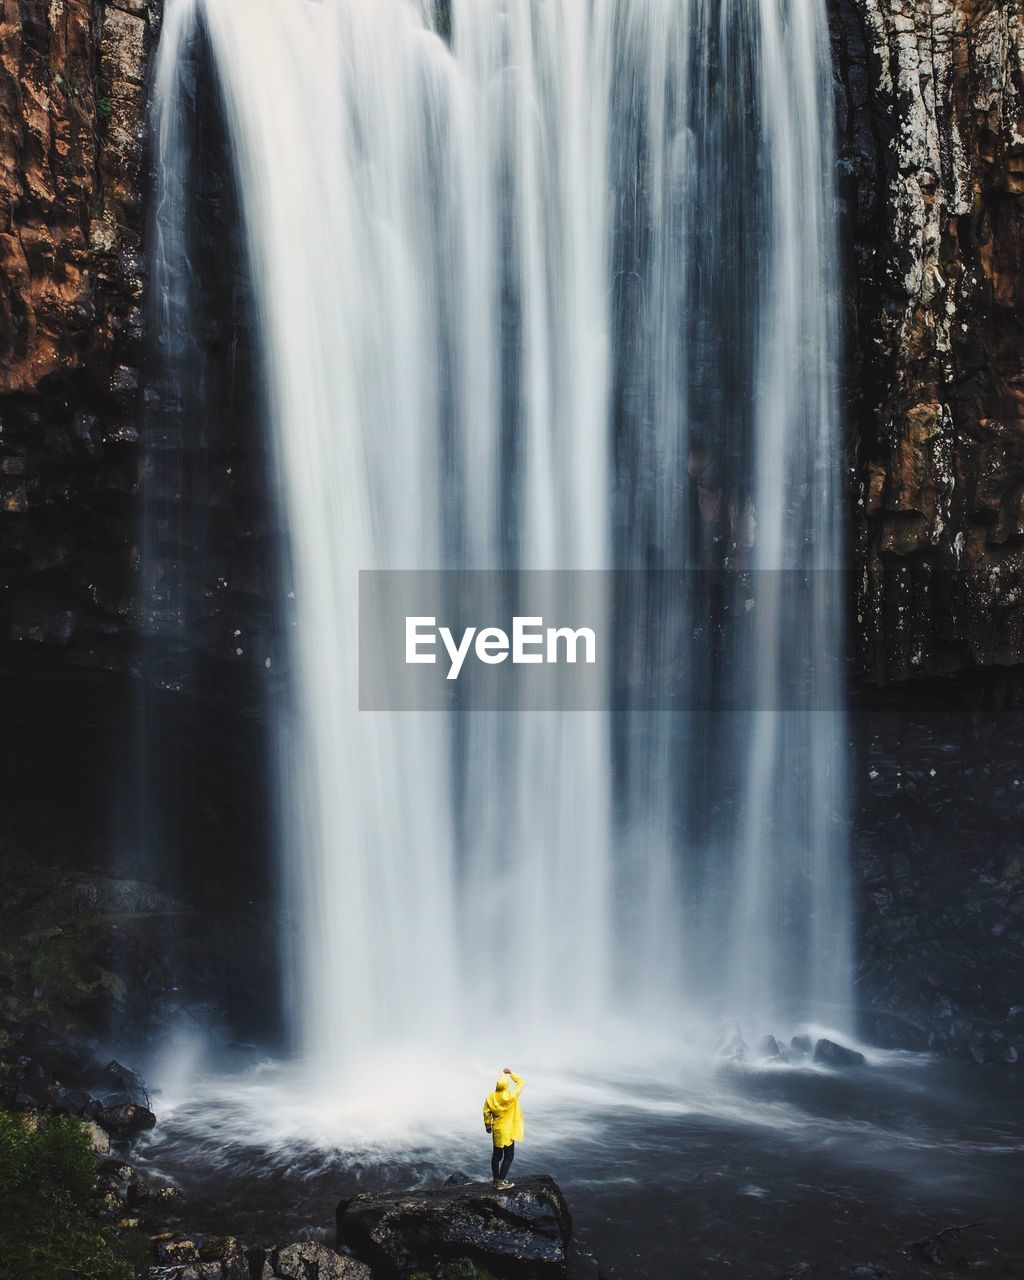 Person Wearing Yellow Raincoat Looking At Majestic Waterfall In Forest